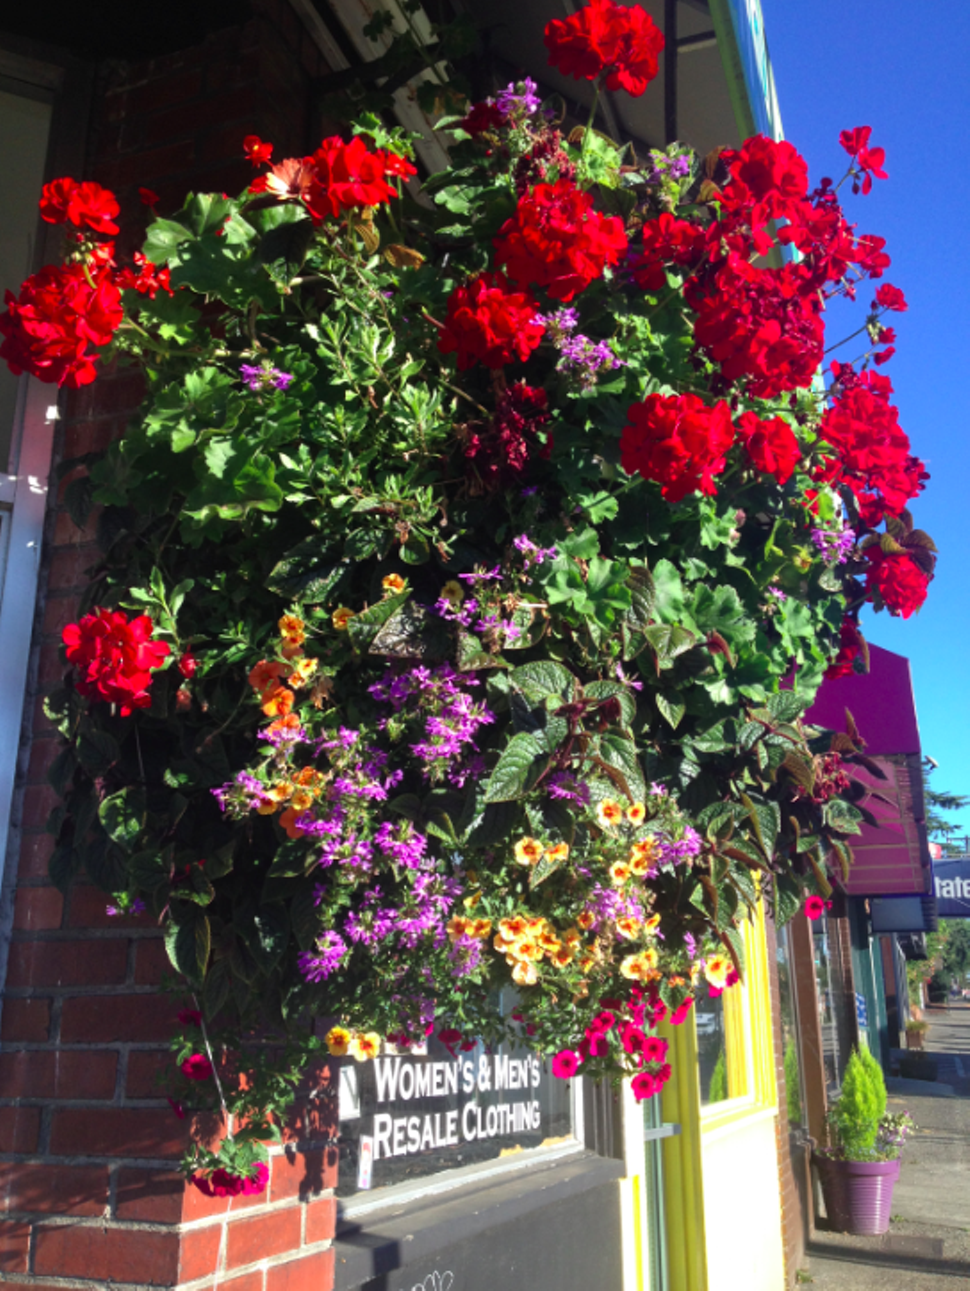 Hanging Flower Baskets Seattle : The morning news ok who s stealing gigantic flower